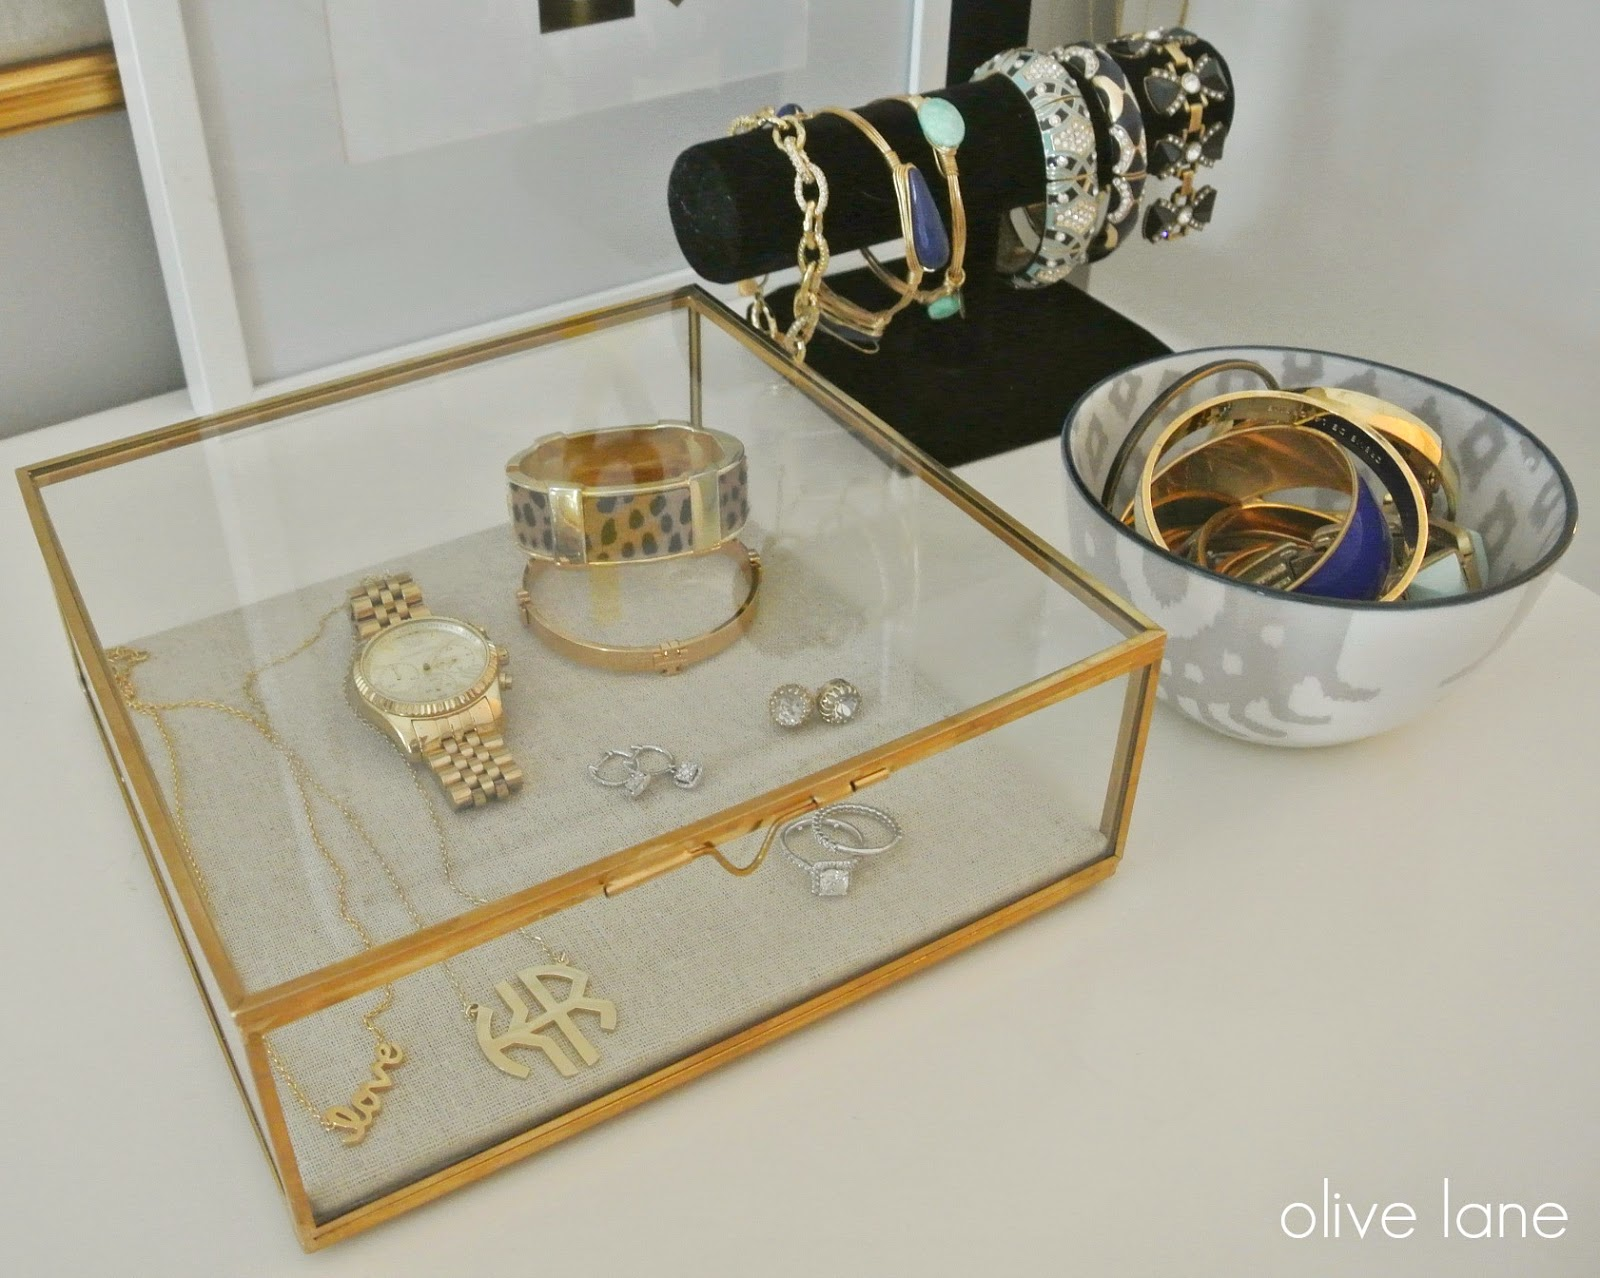 Olive Lane Organized Jewelry